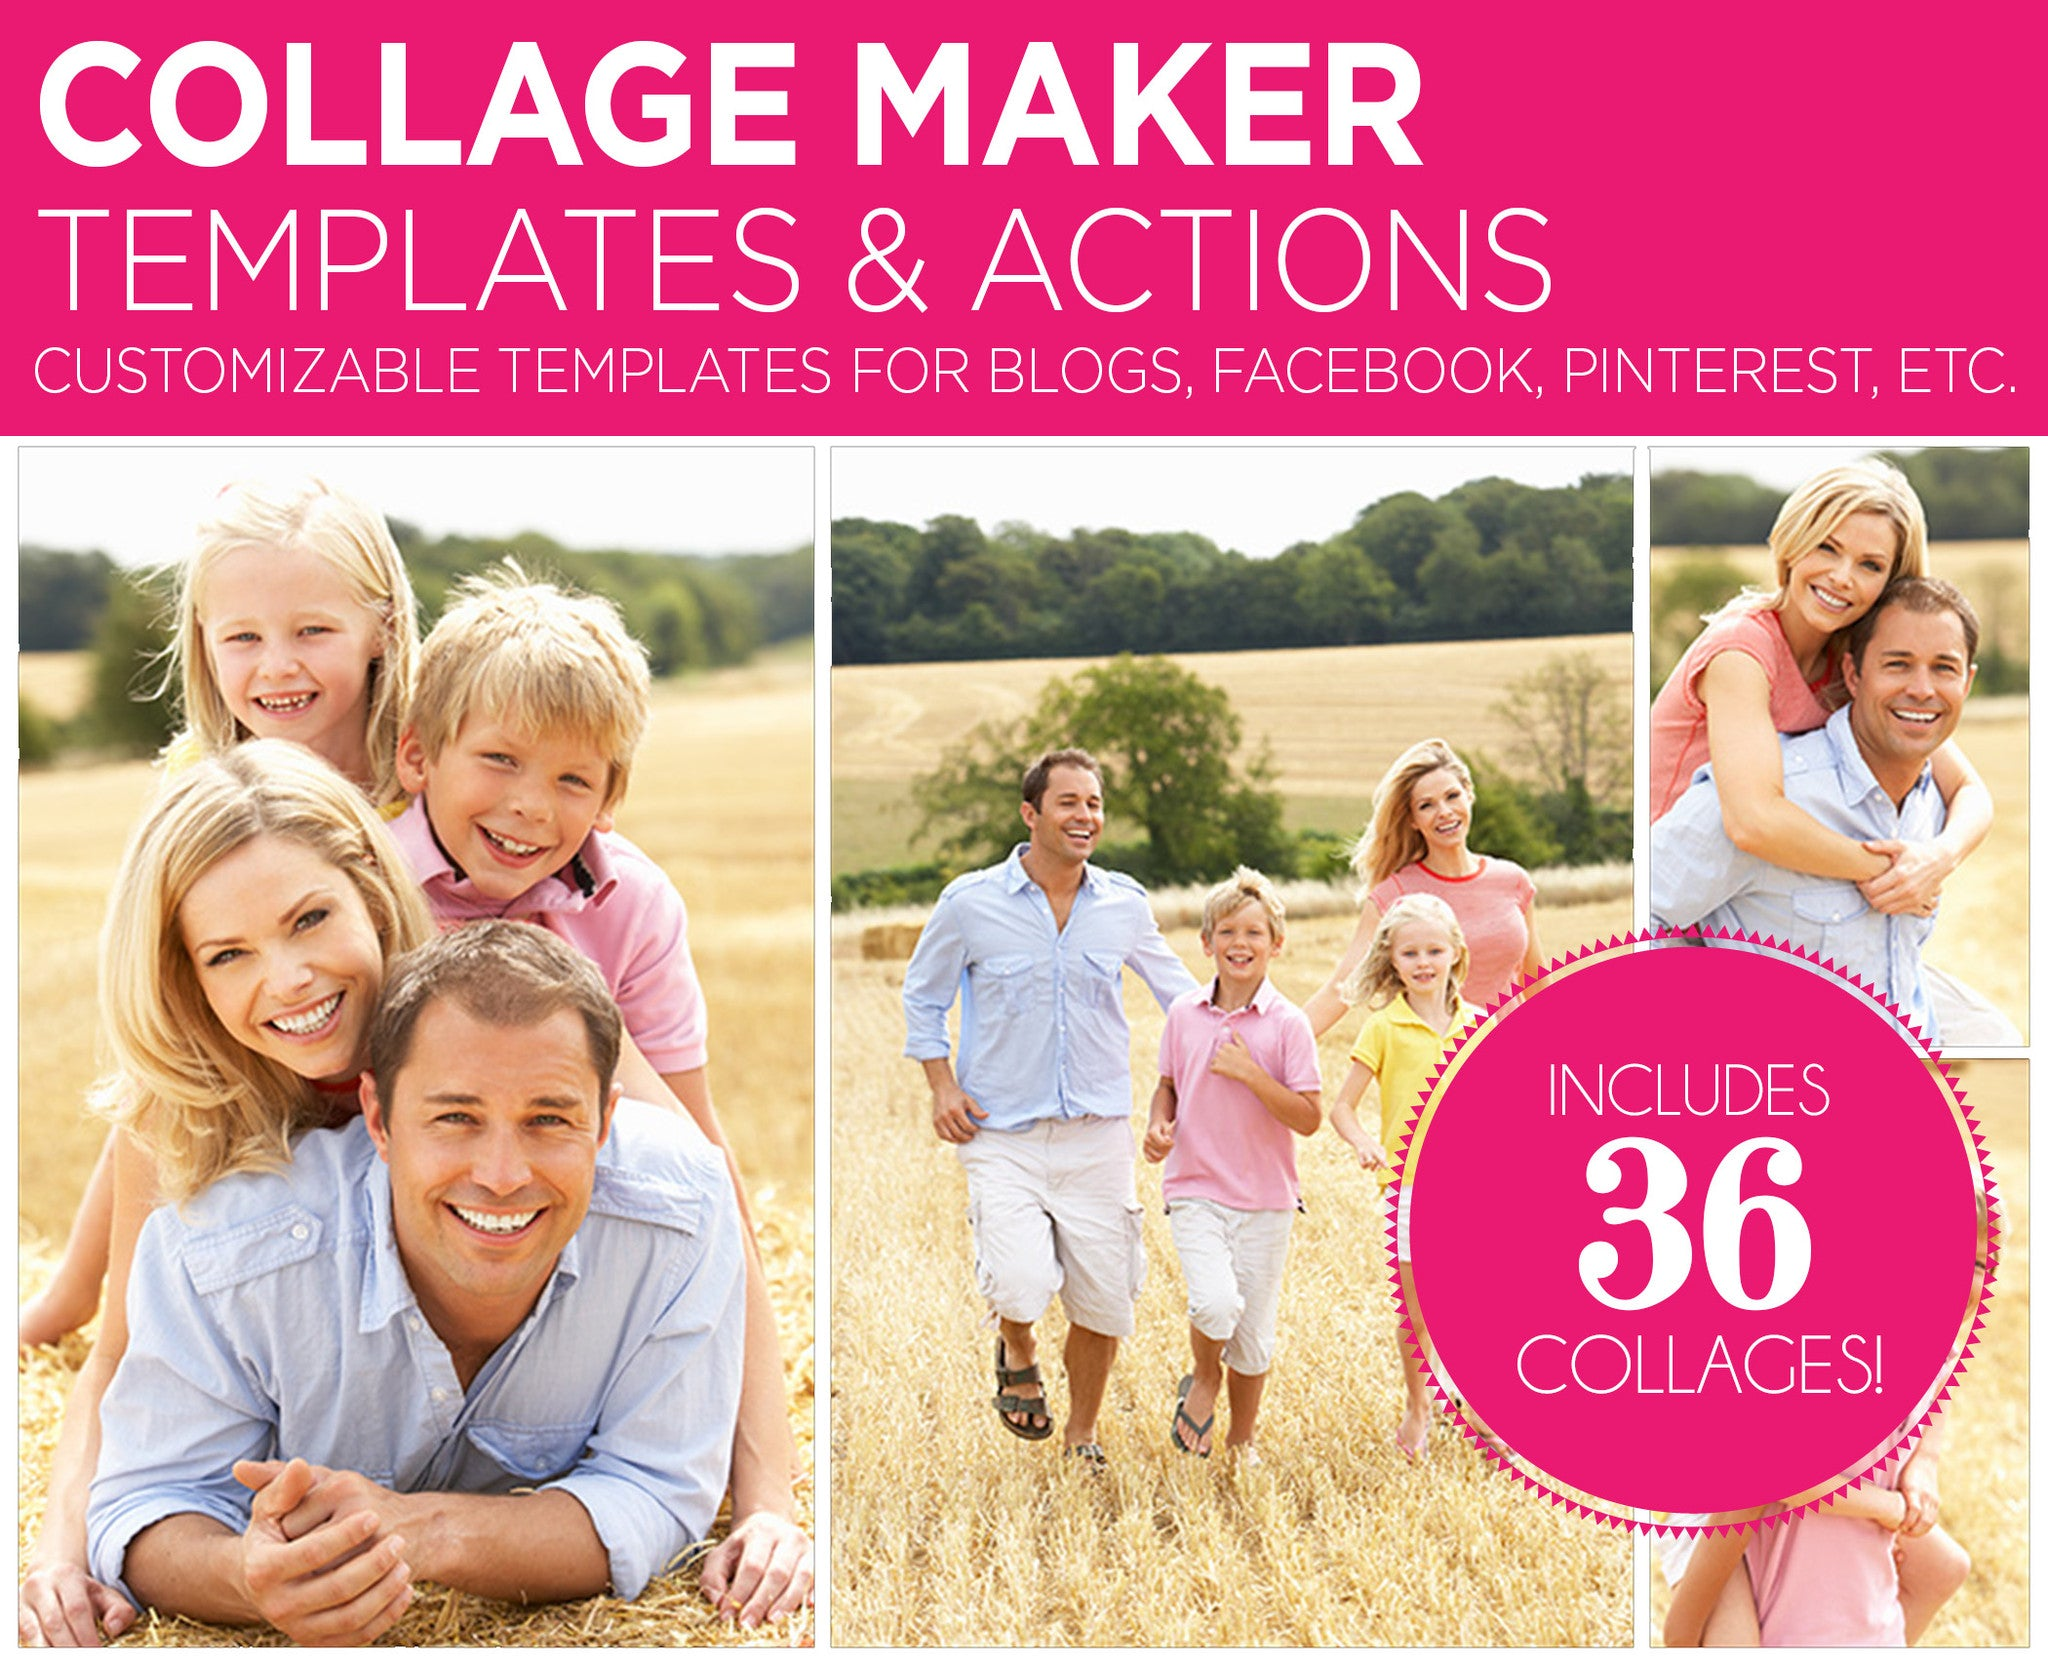 Collage Maker Templates & Actions - BP4U Guides